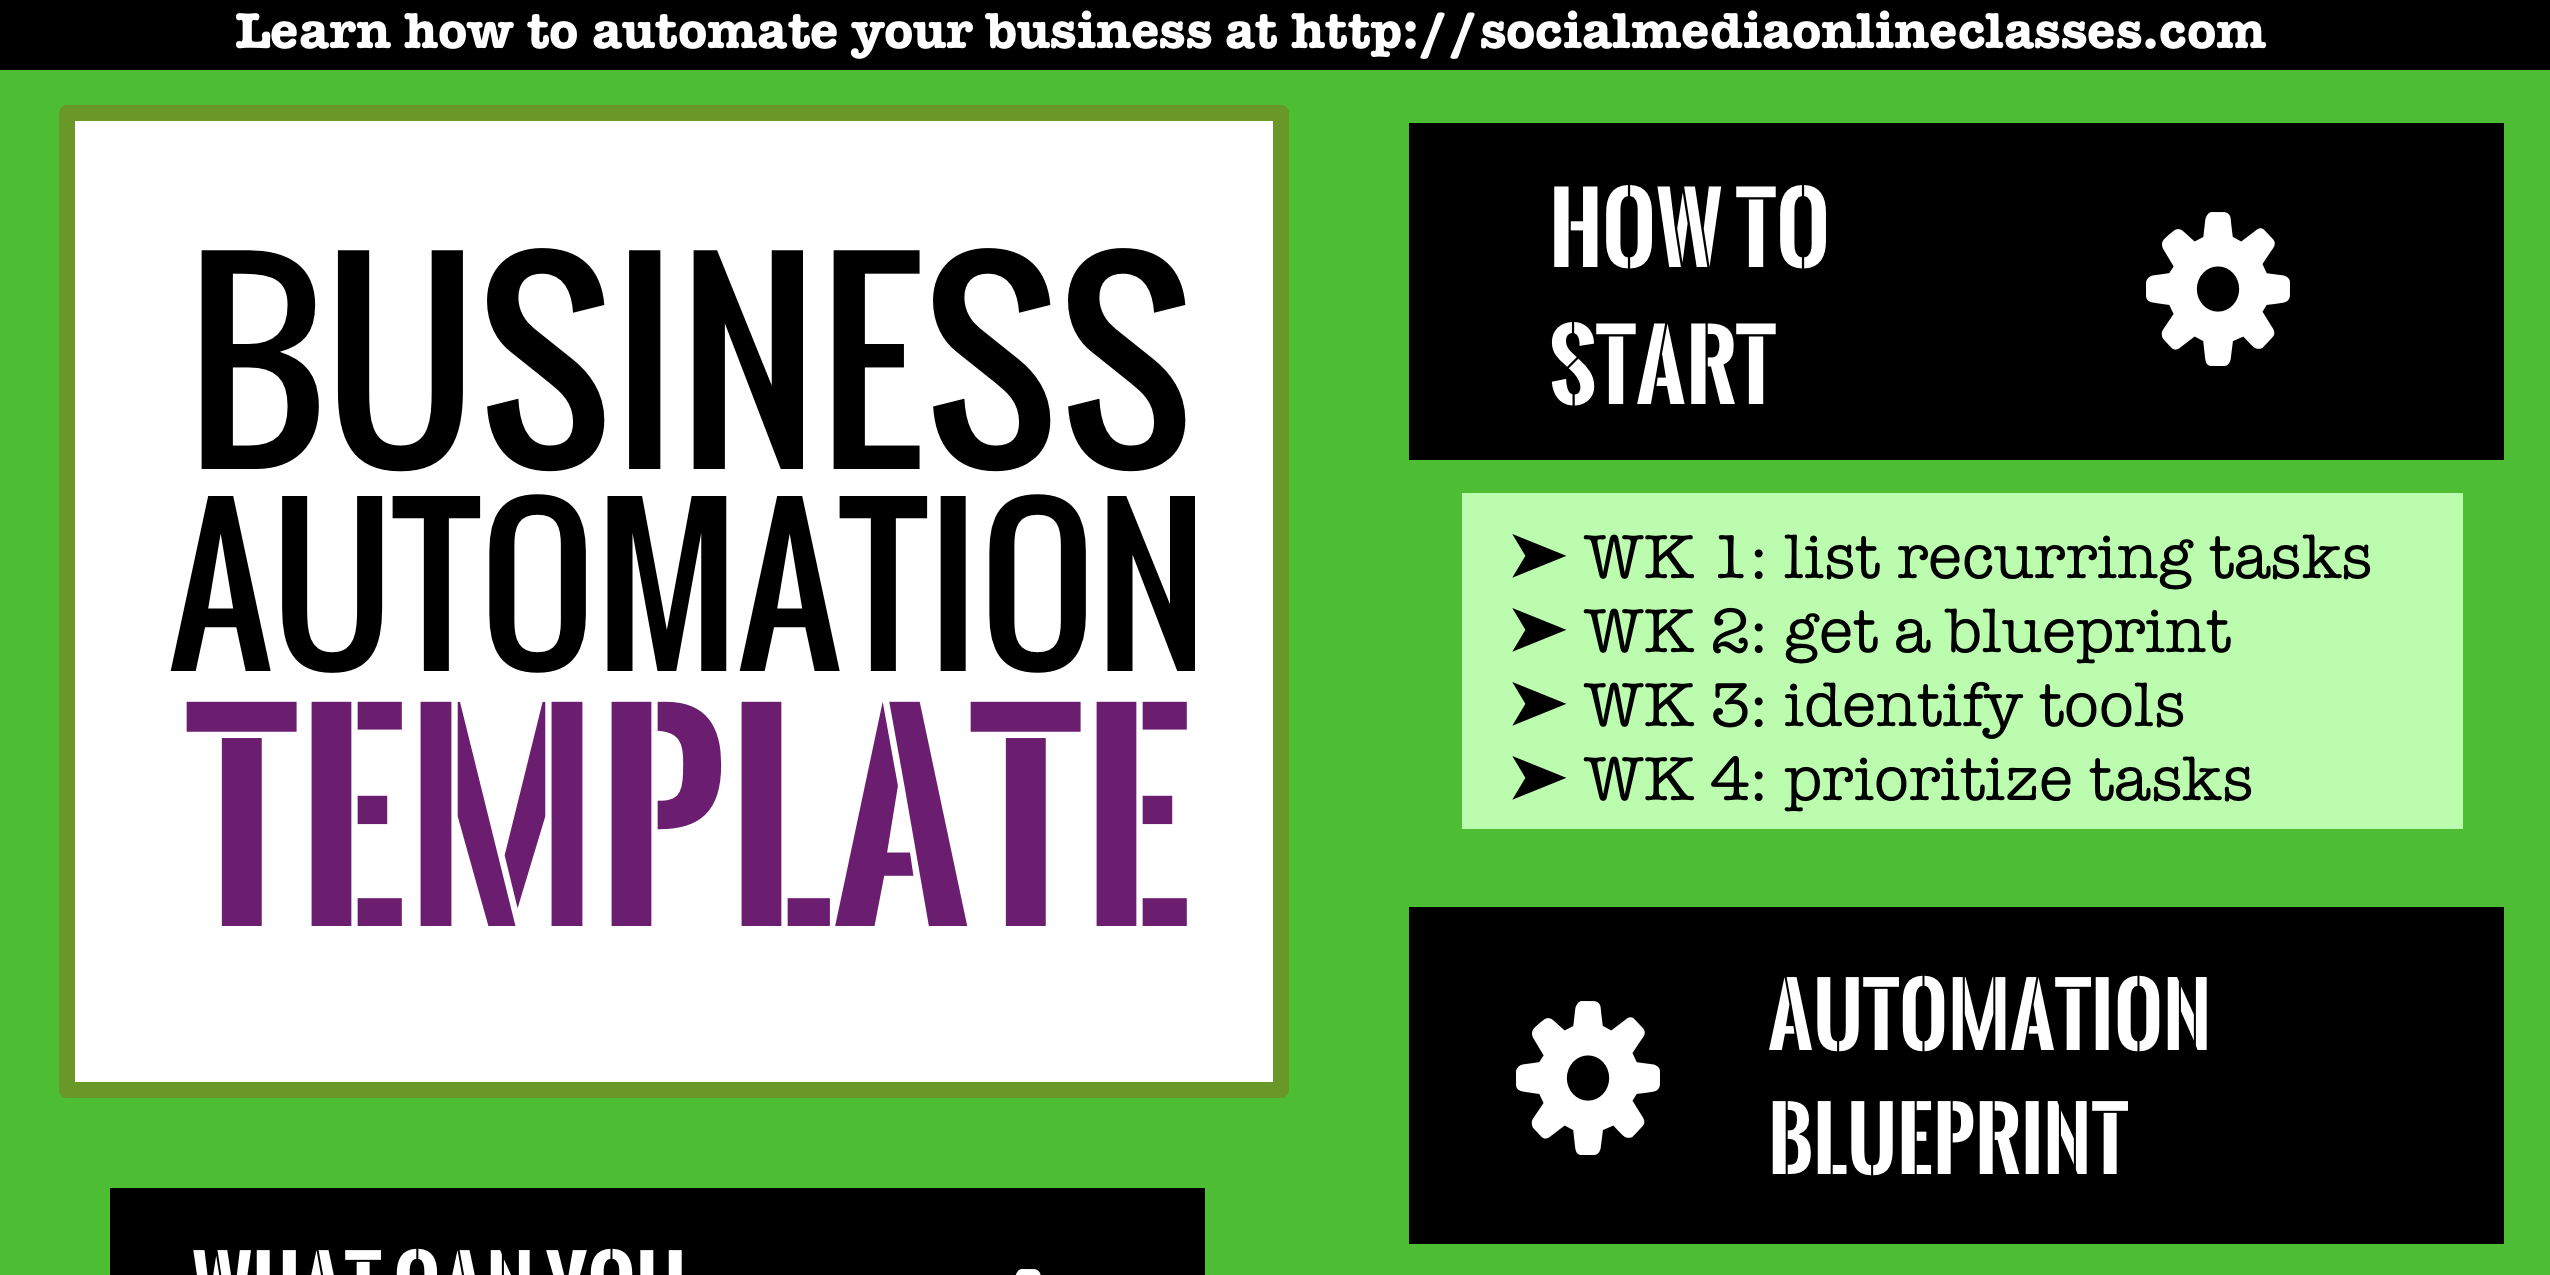 BUSINESS AUTOMATION TEMPLATE fi